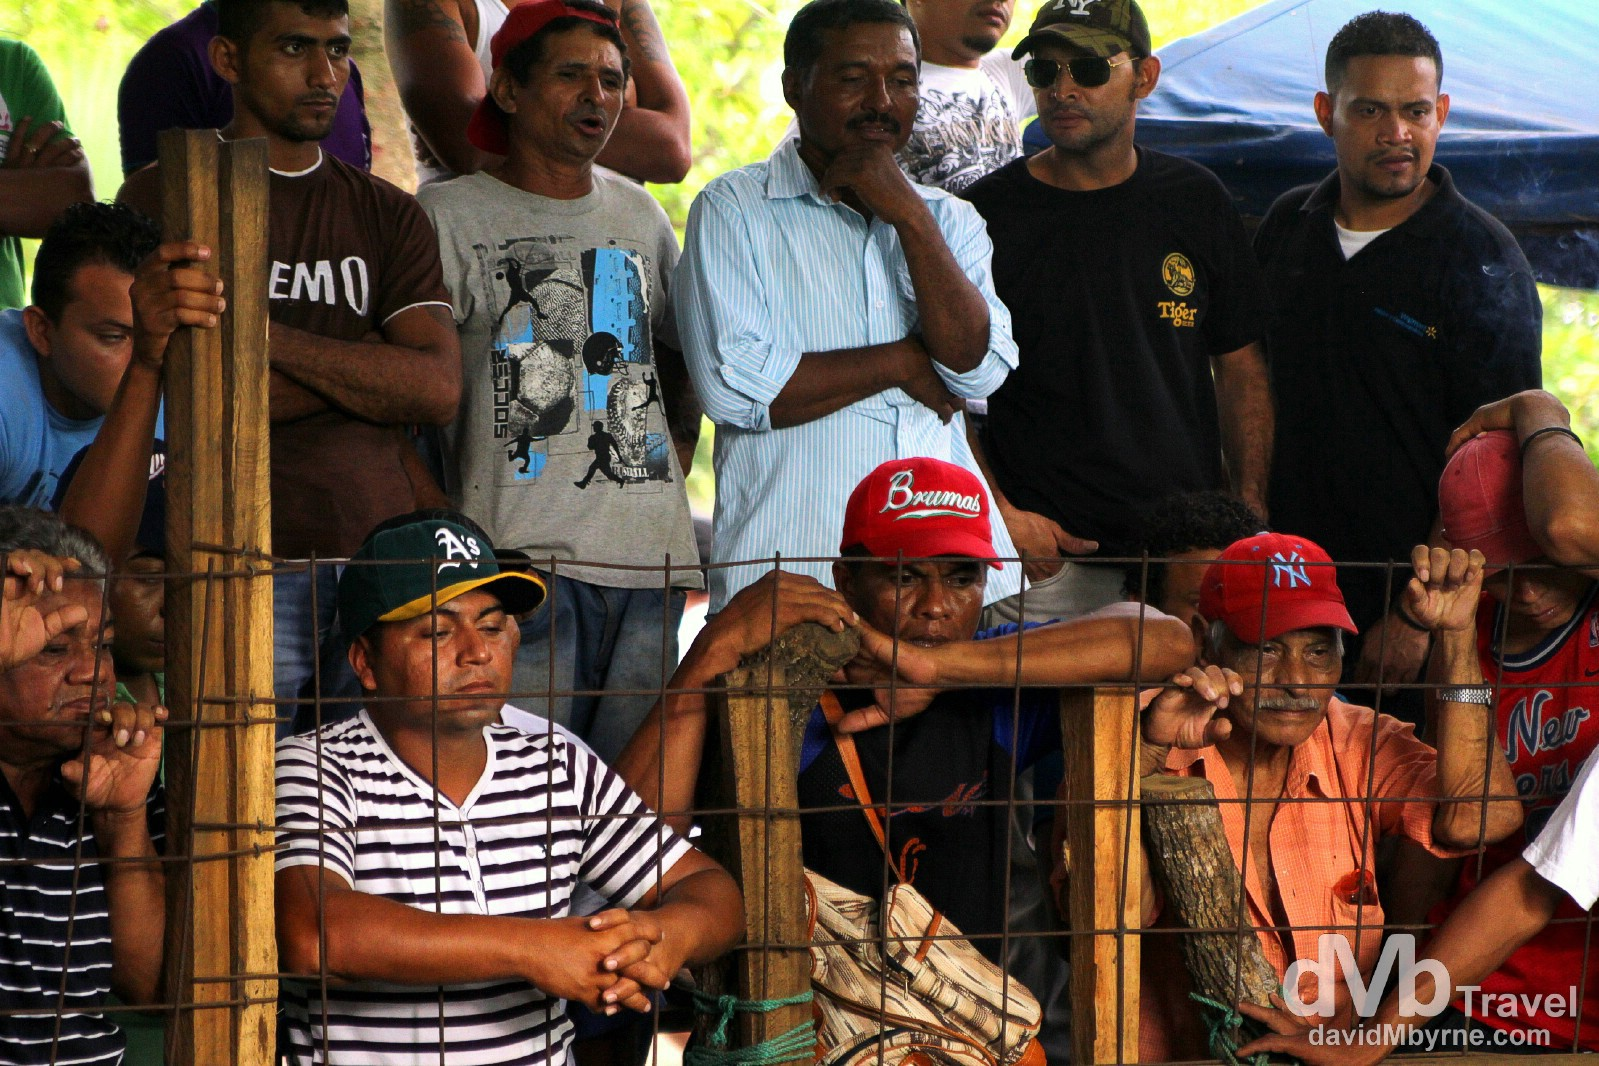 Spectators at a cock fighting bout in Leon, Nicaragua. June 16th 2013.